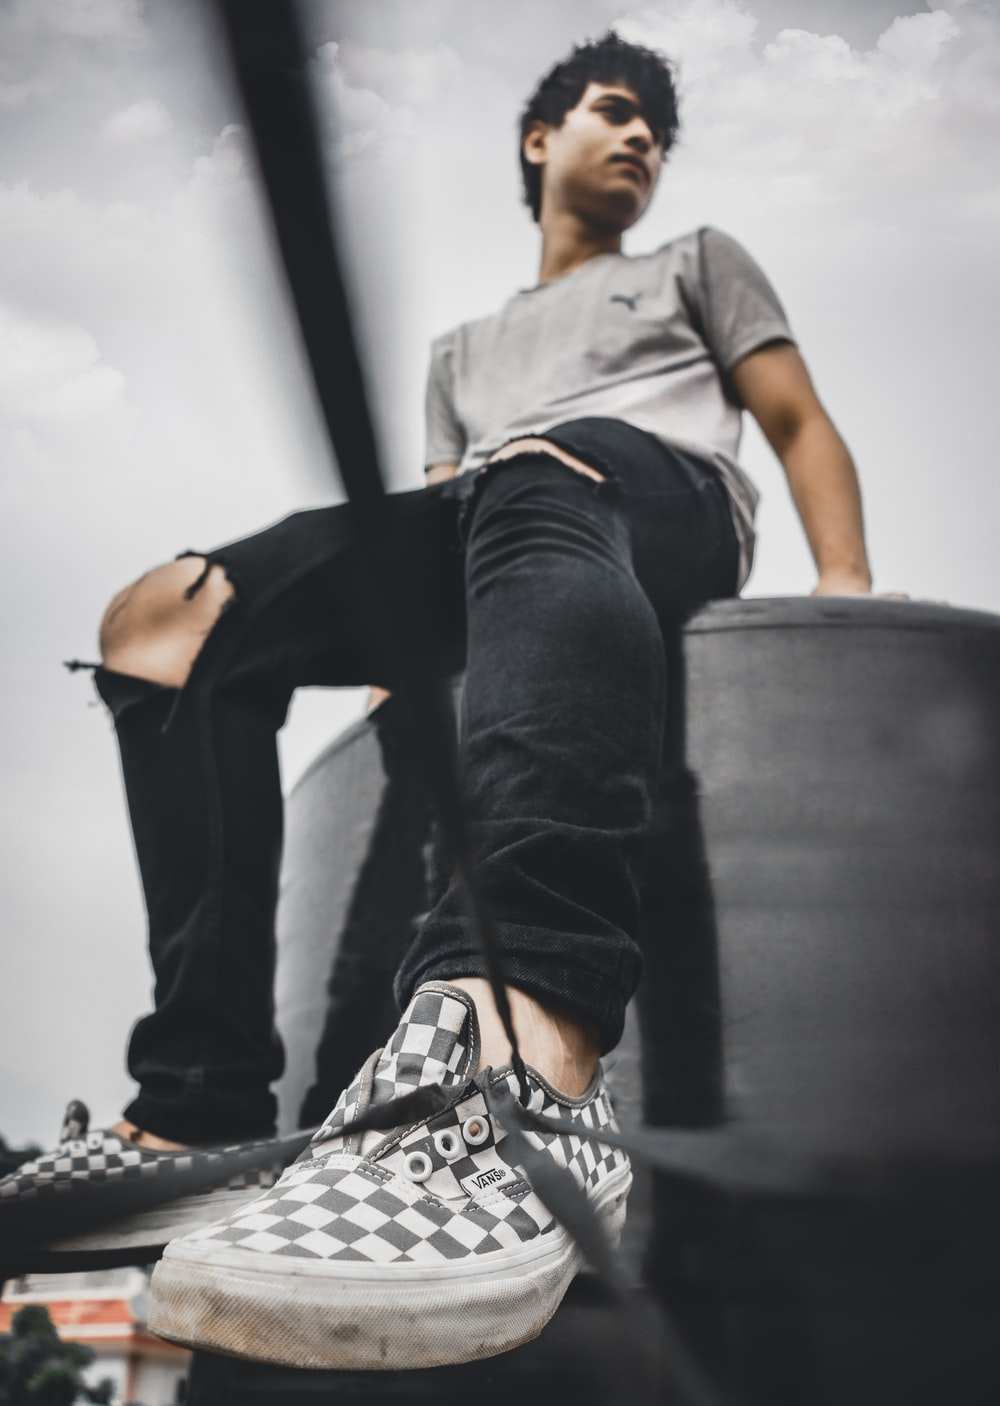 man wearing distressed black denim jeans close-up photography